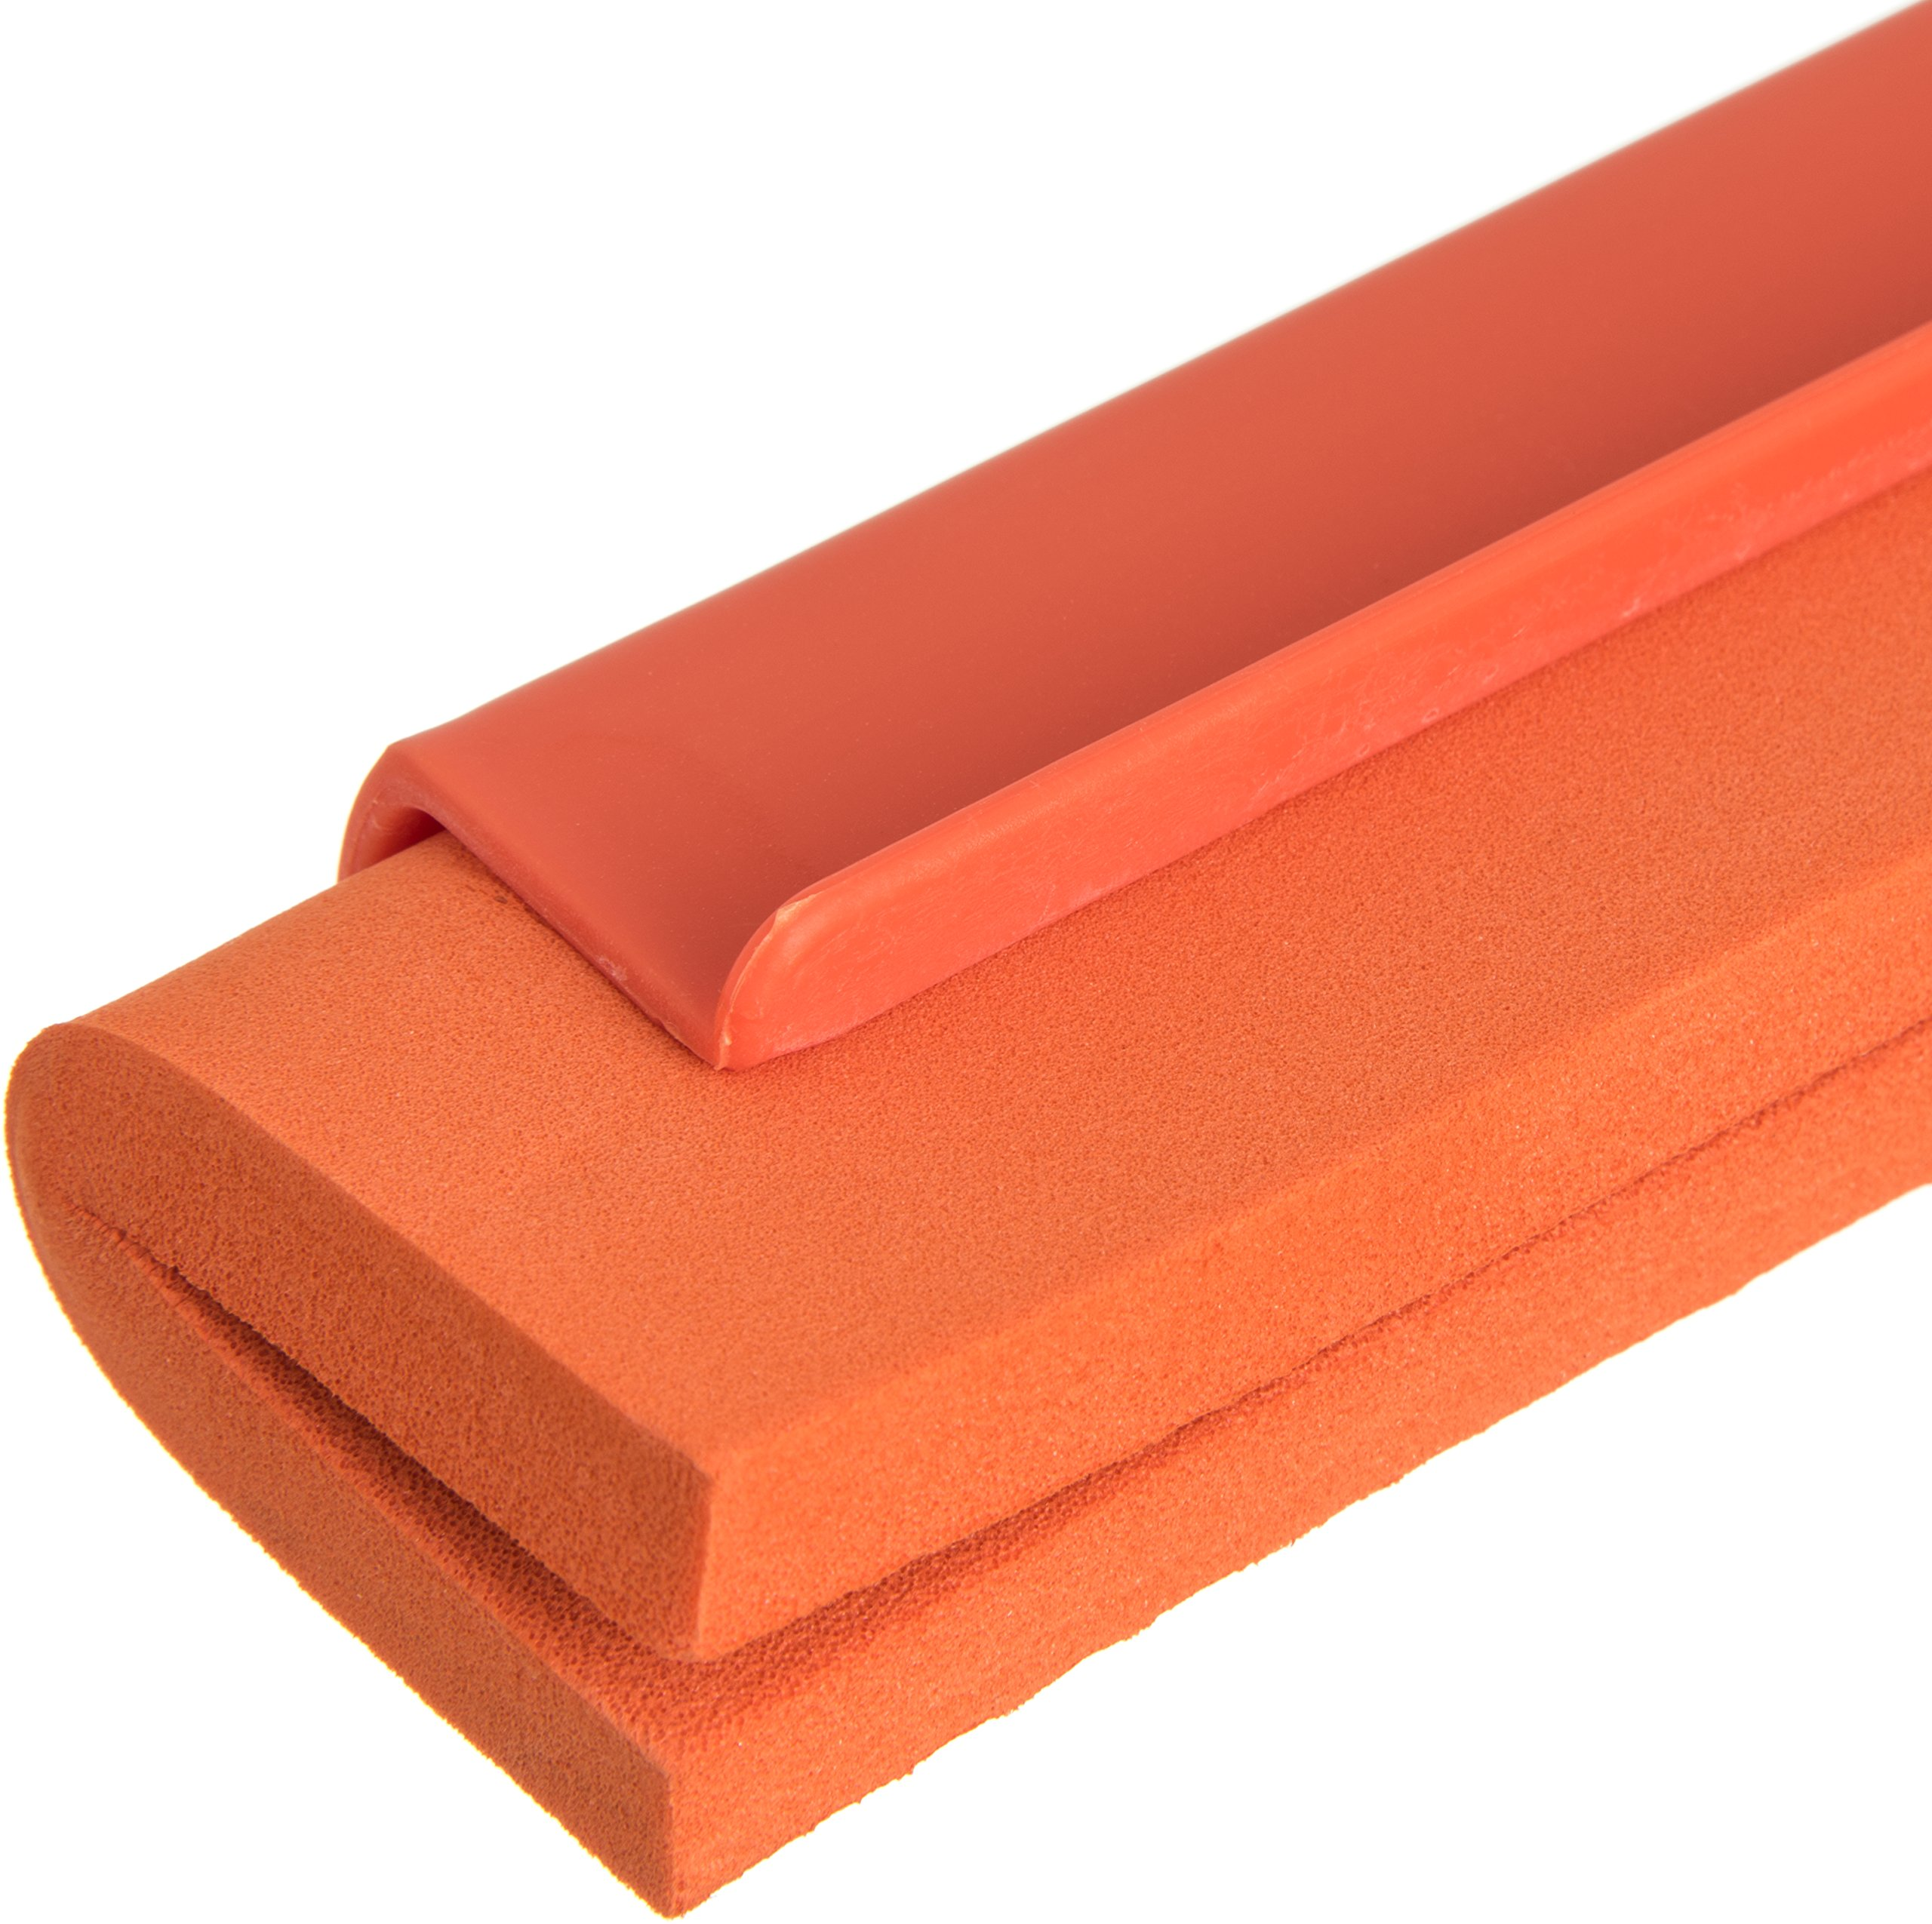 Carlisle 4156824 Spectrum Double Foam Rubber Floor Squeegee with Plastic Frame, 24'' Length, Orange by Carlisle (Image #4)